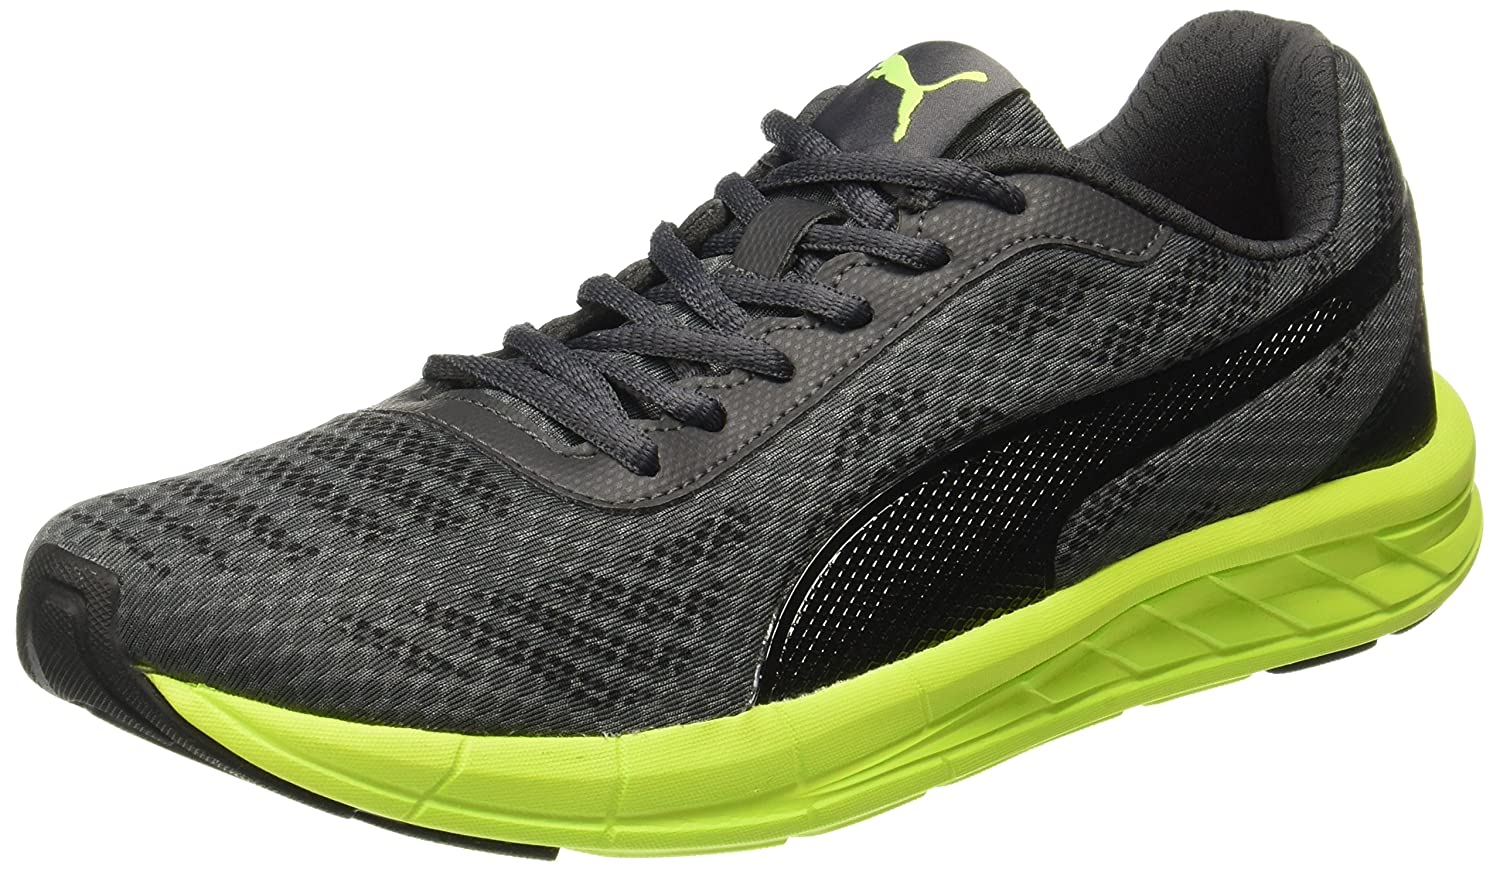 aa3a452e068 Puma Men s Meteor Idp Running Shoes  Buy Online at Low Prices in India -  Amazon.in